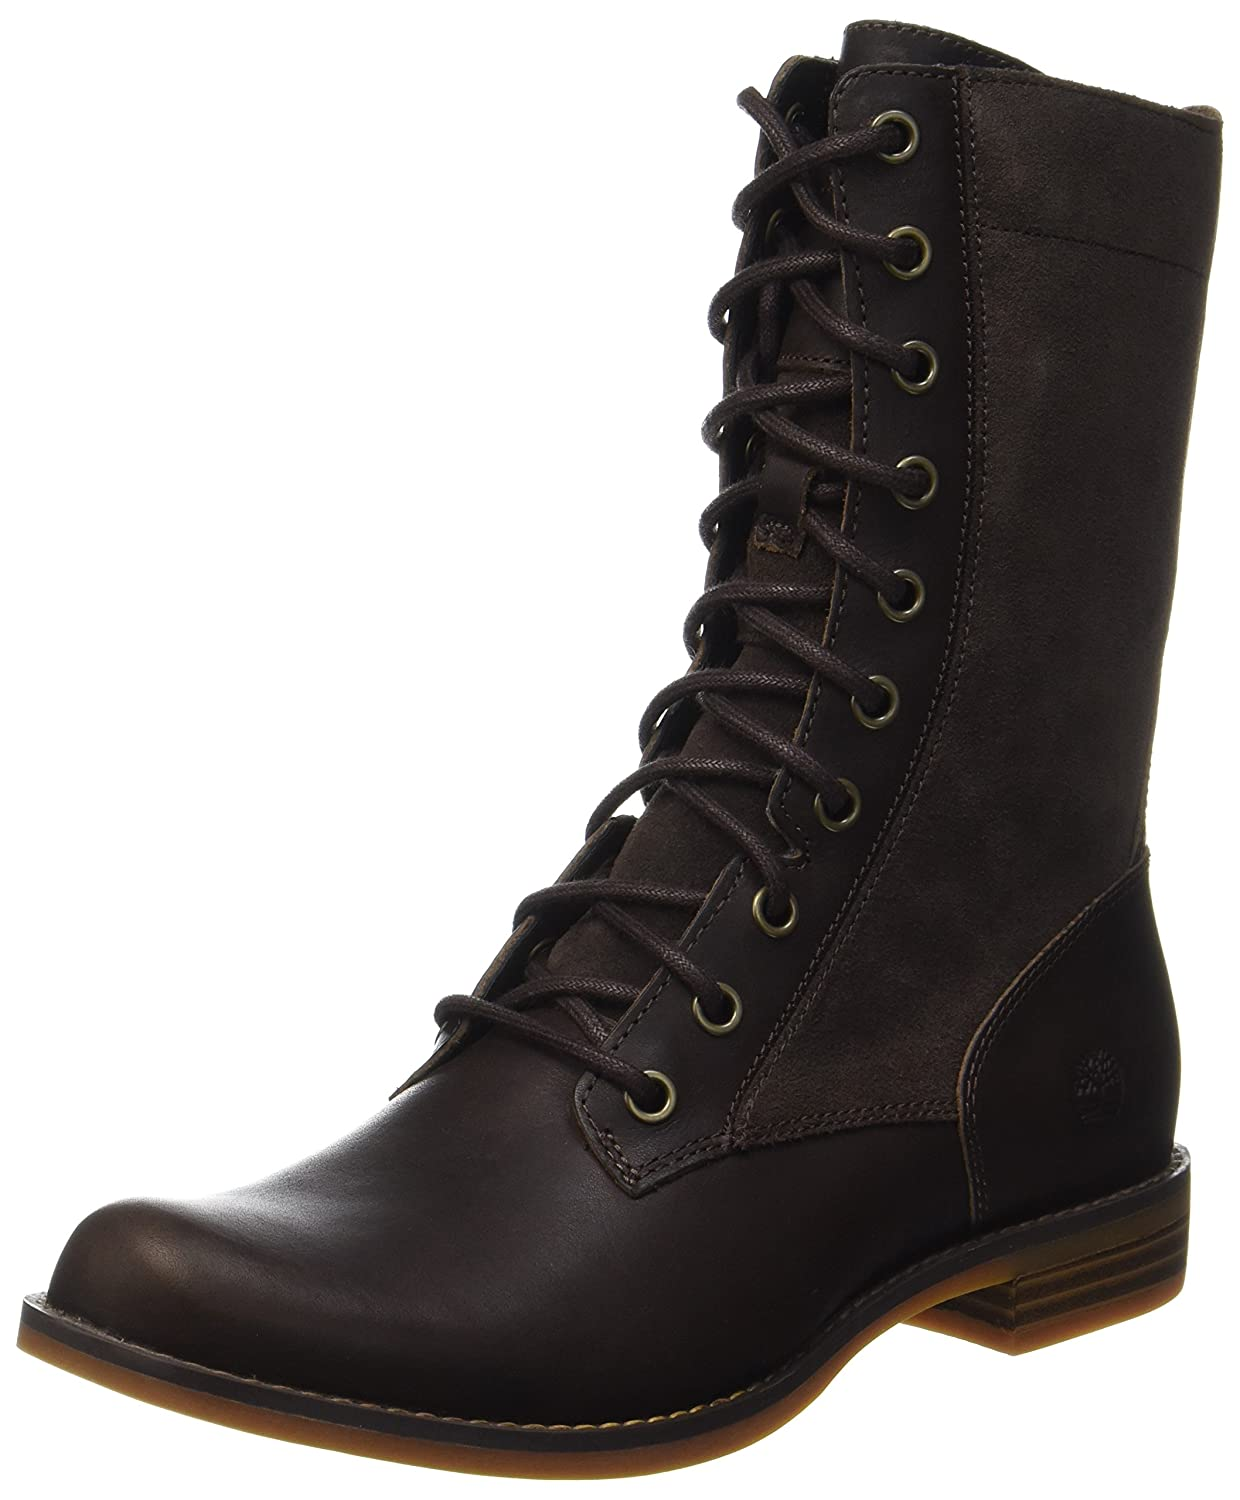 01d275d1 Timberland Women's Magby Boot: Amazon.co.uk: Shoes & Bags